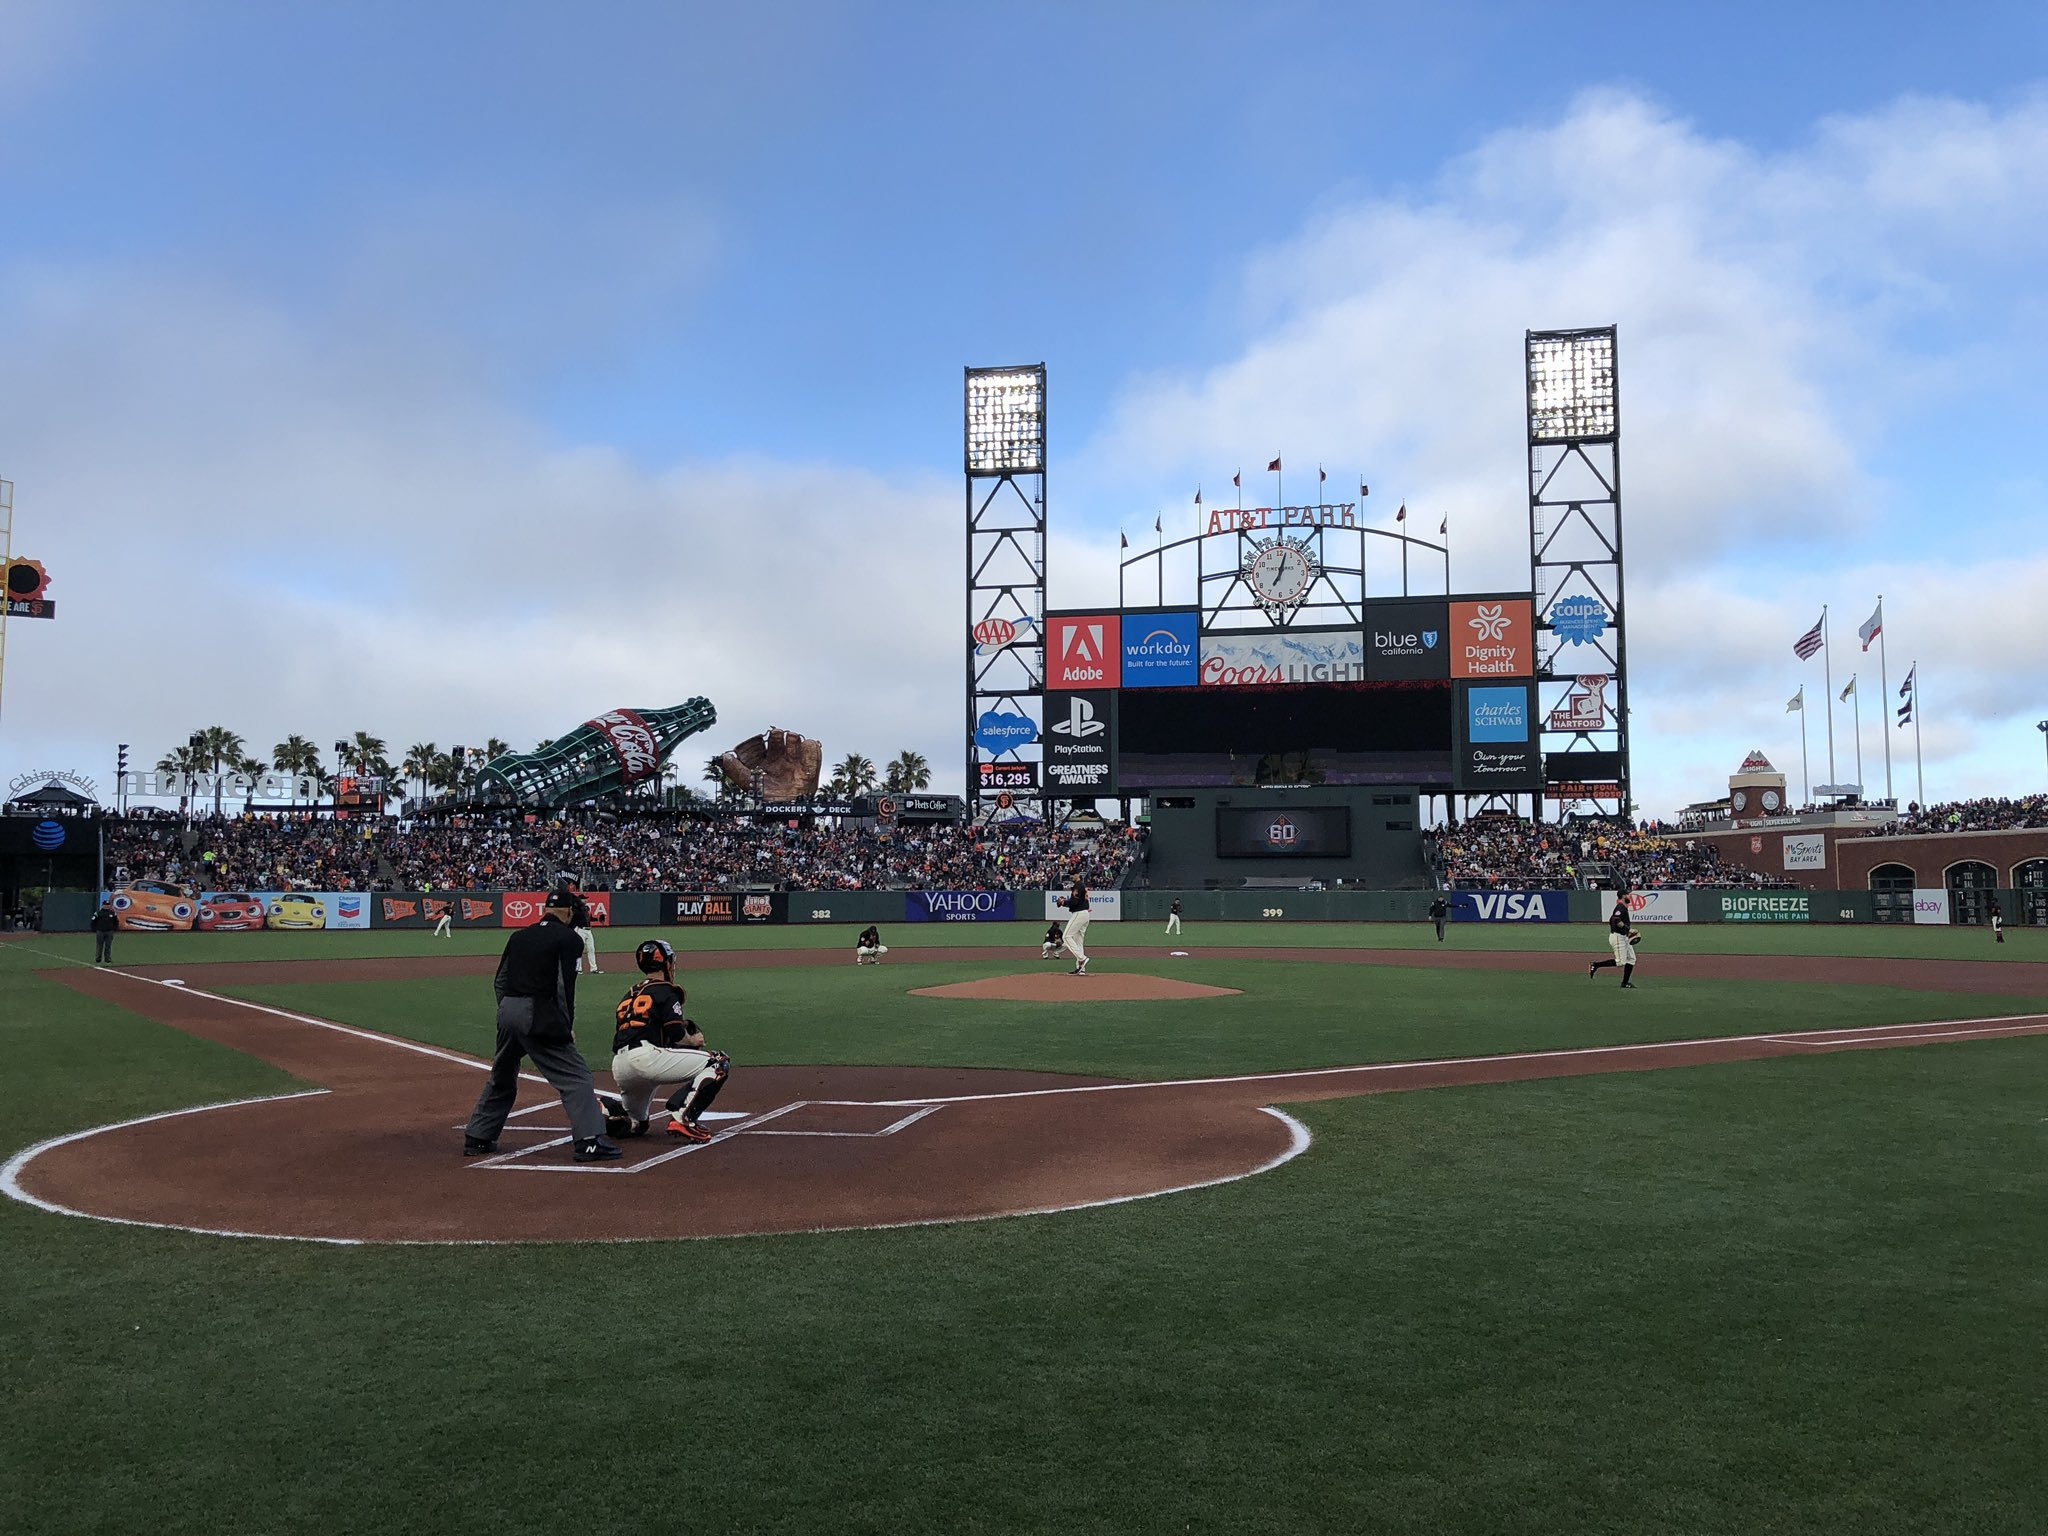 Saturday night ⚾️ at our ballpark by the bay.  #SFGiants https://t.co/sem7FxOujD